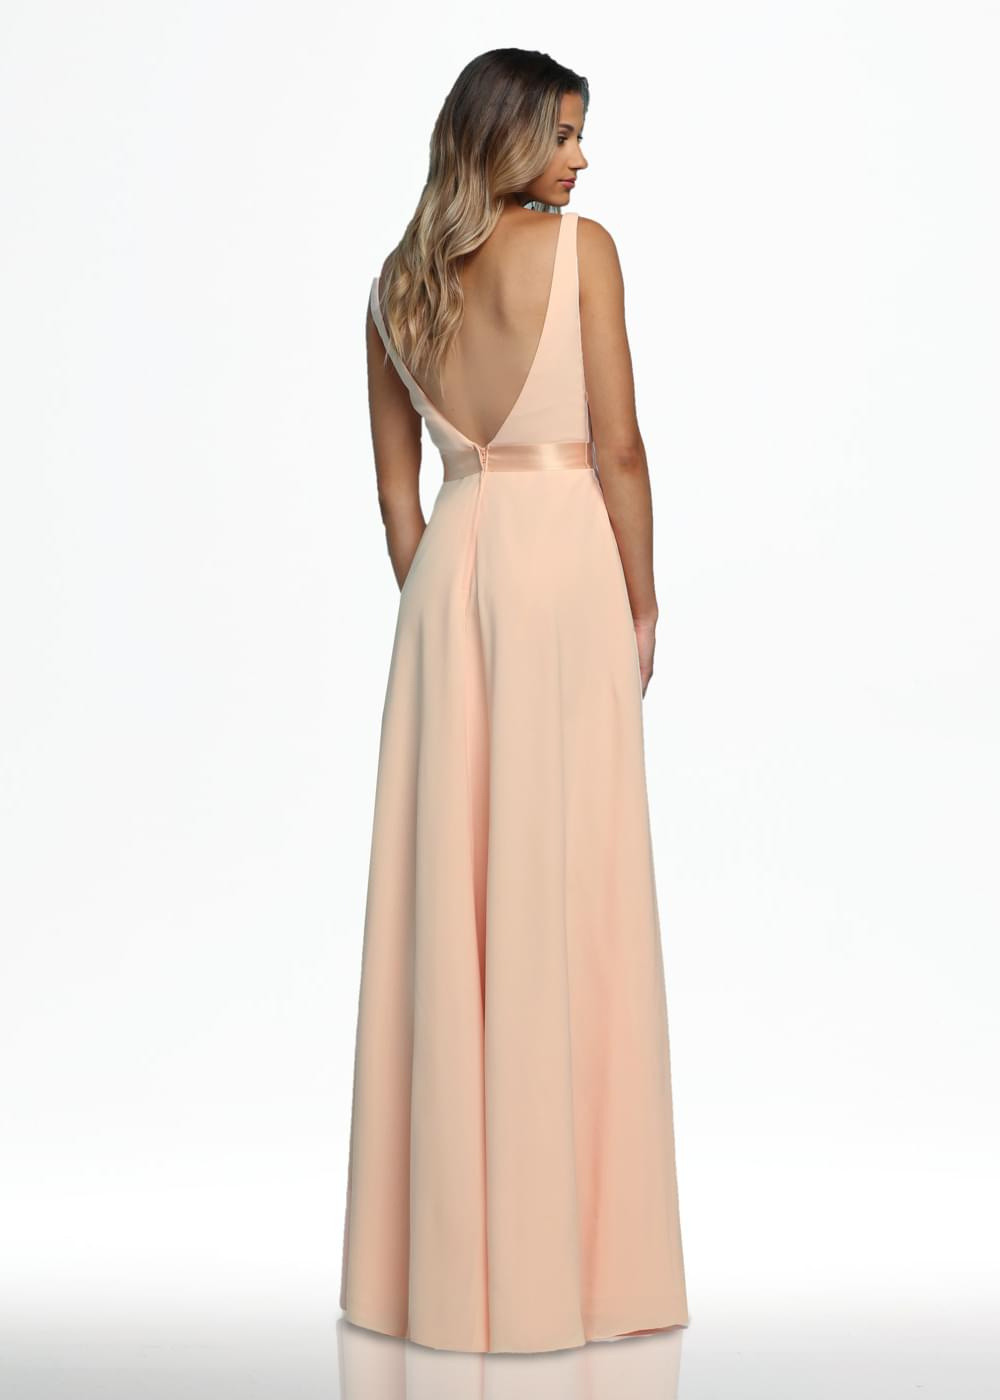 80117 Dresses with Straps By Ashdon